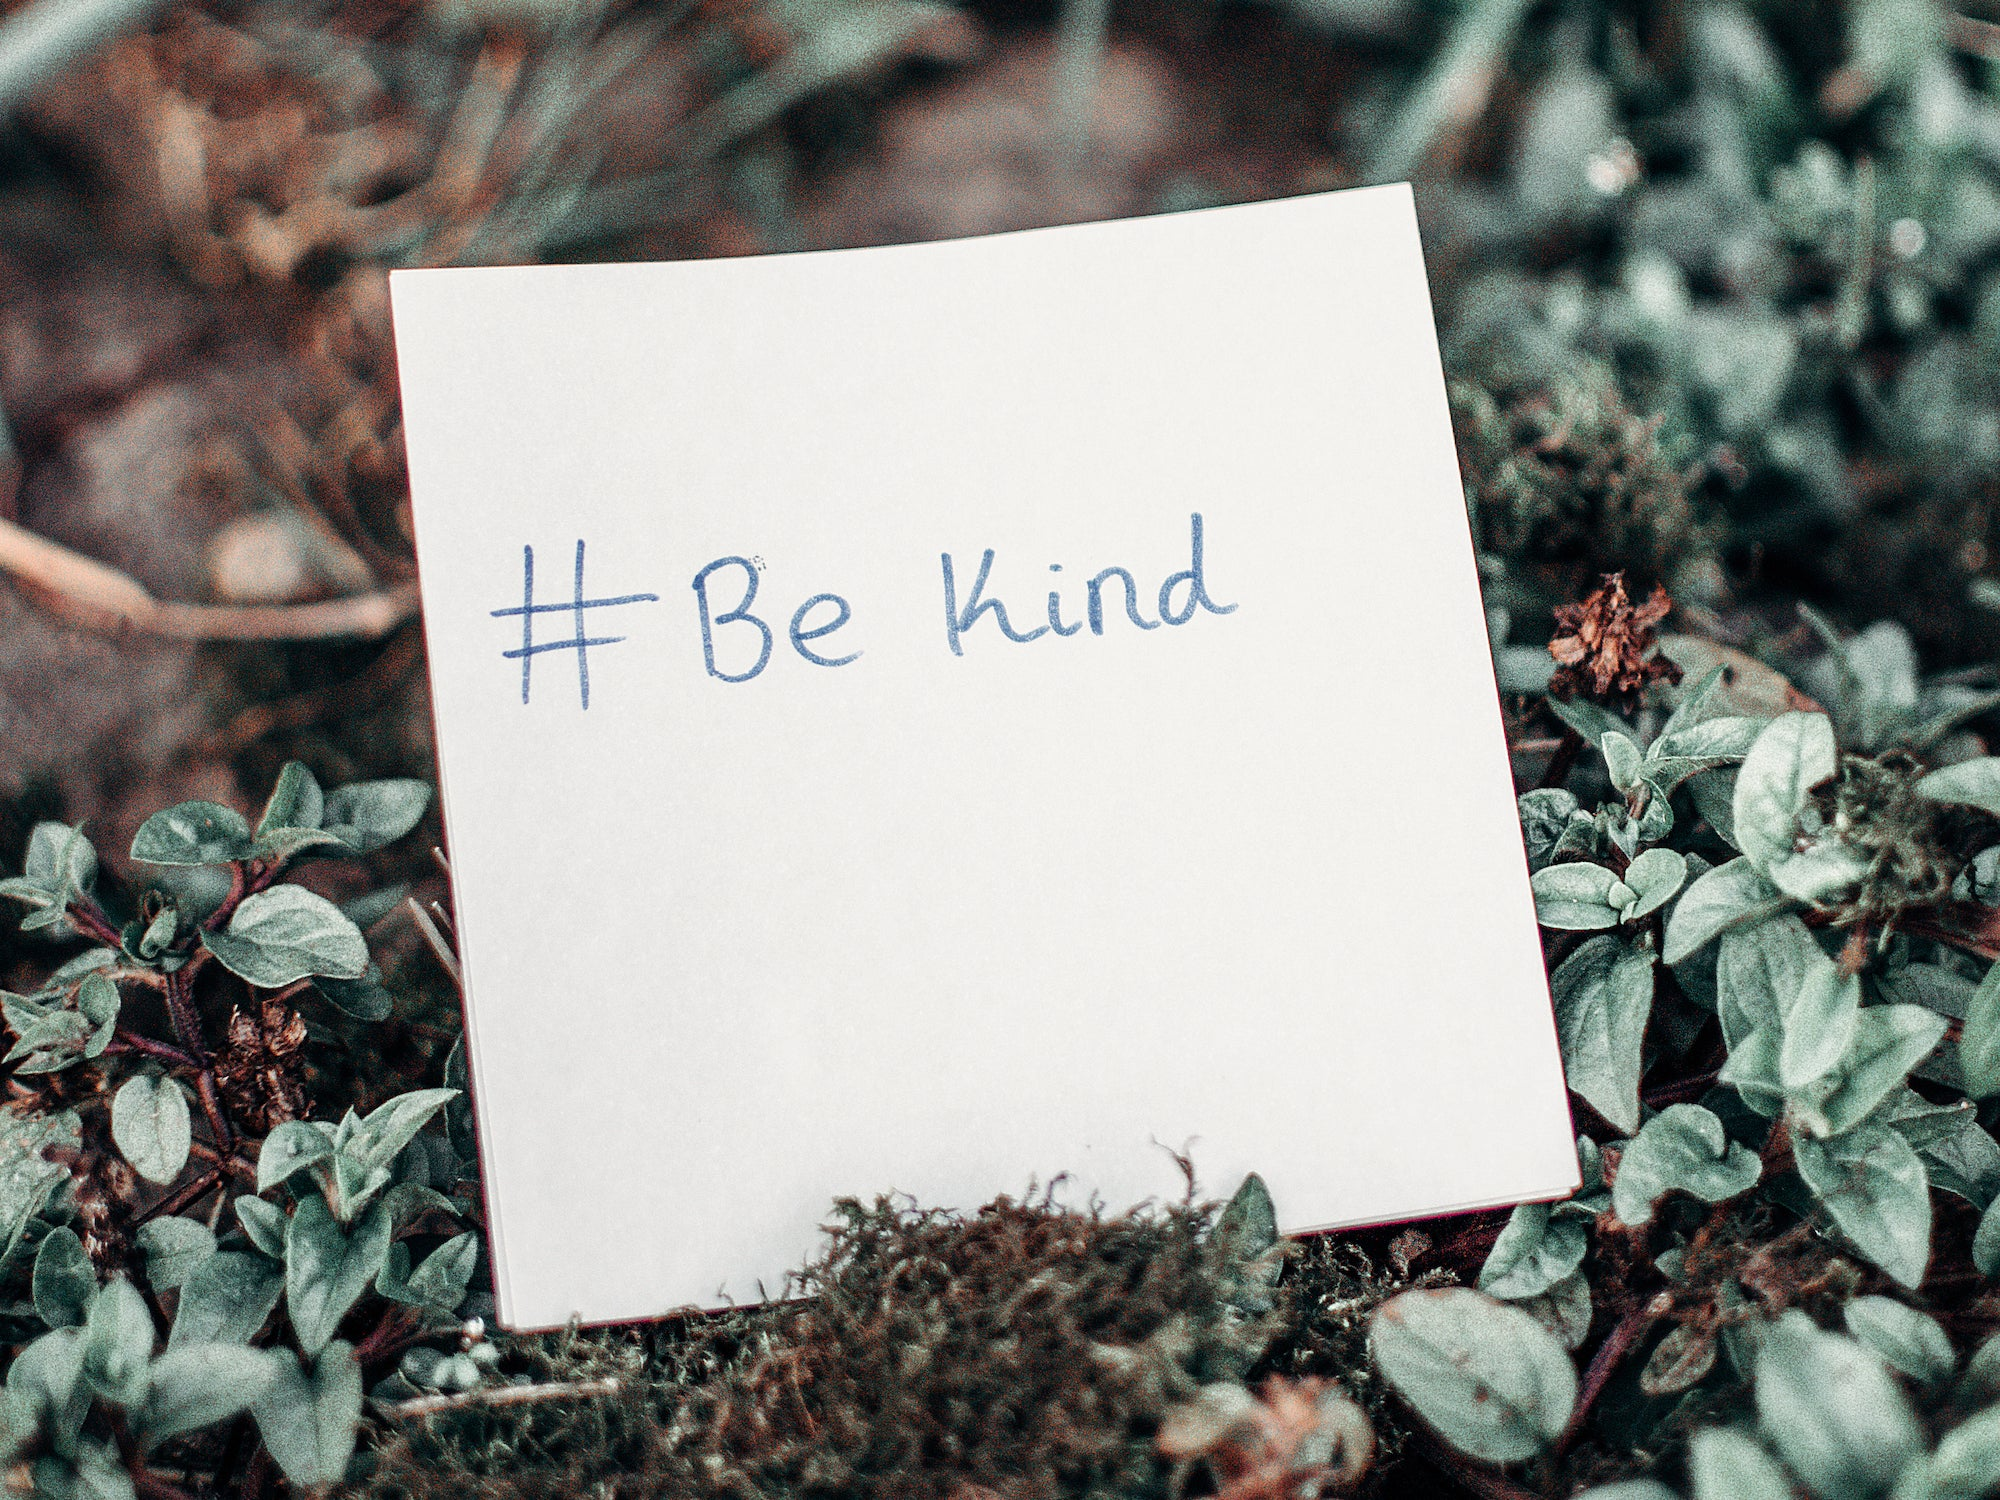 Sow More Seeds of Kindness